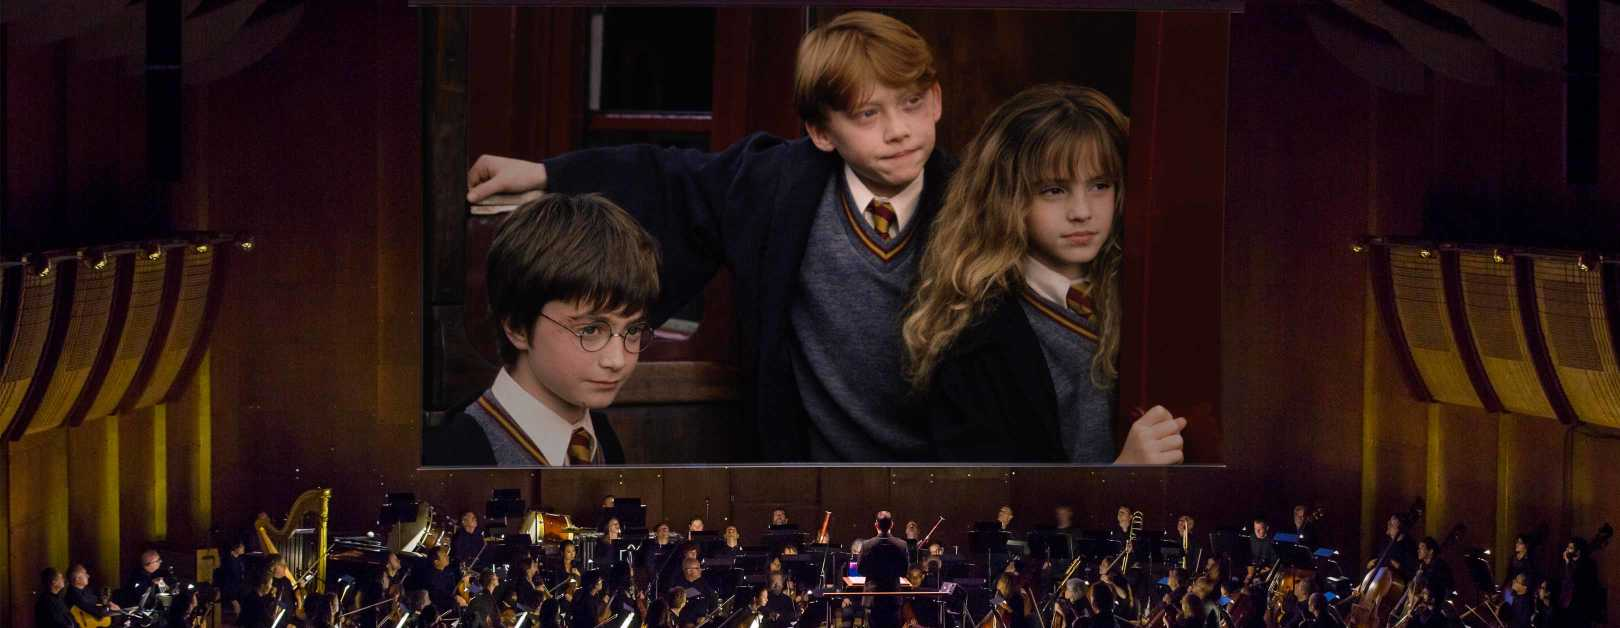 Turning Stone Concerts December 2020 Calendar Harry Potter and the Sorcerer's Stone™ in Concert